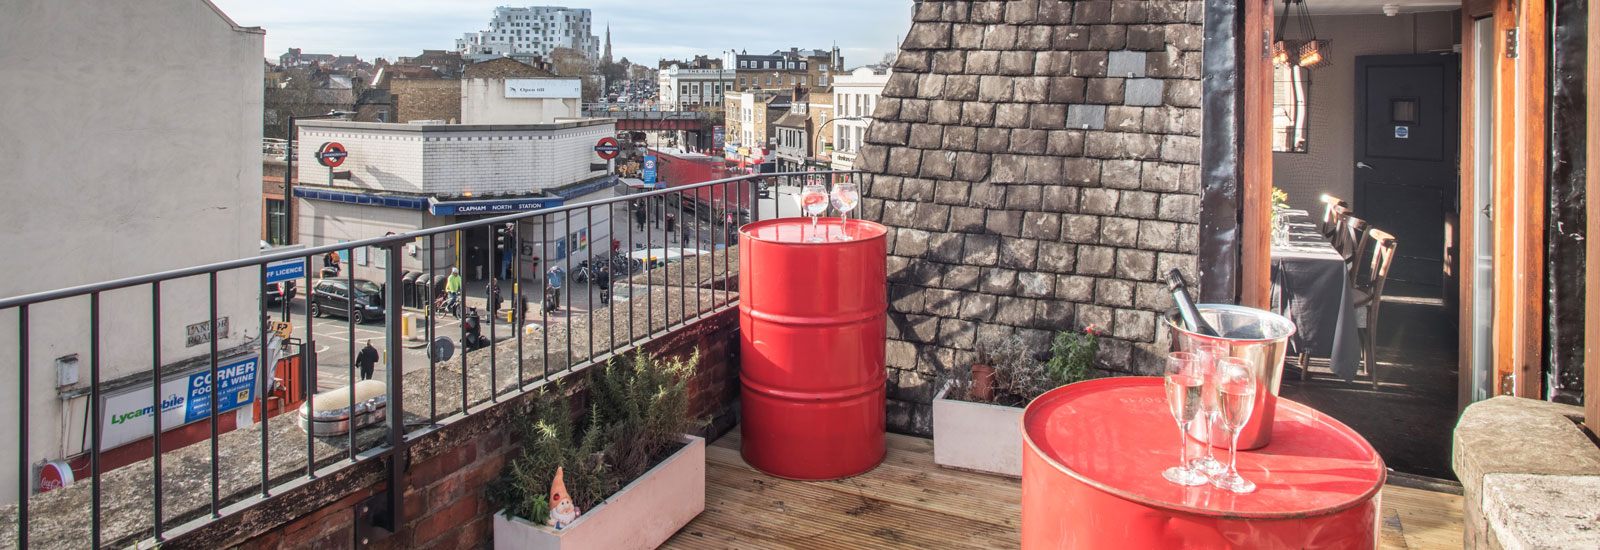 The-Treehouse-Private-Terrace-Dining-Event-Clapham-North